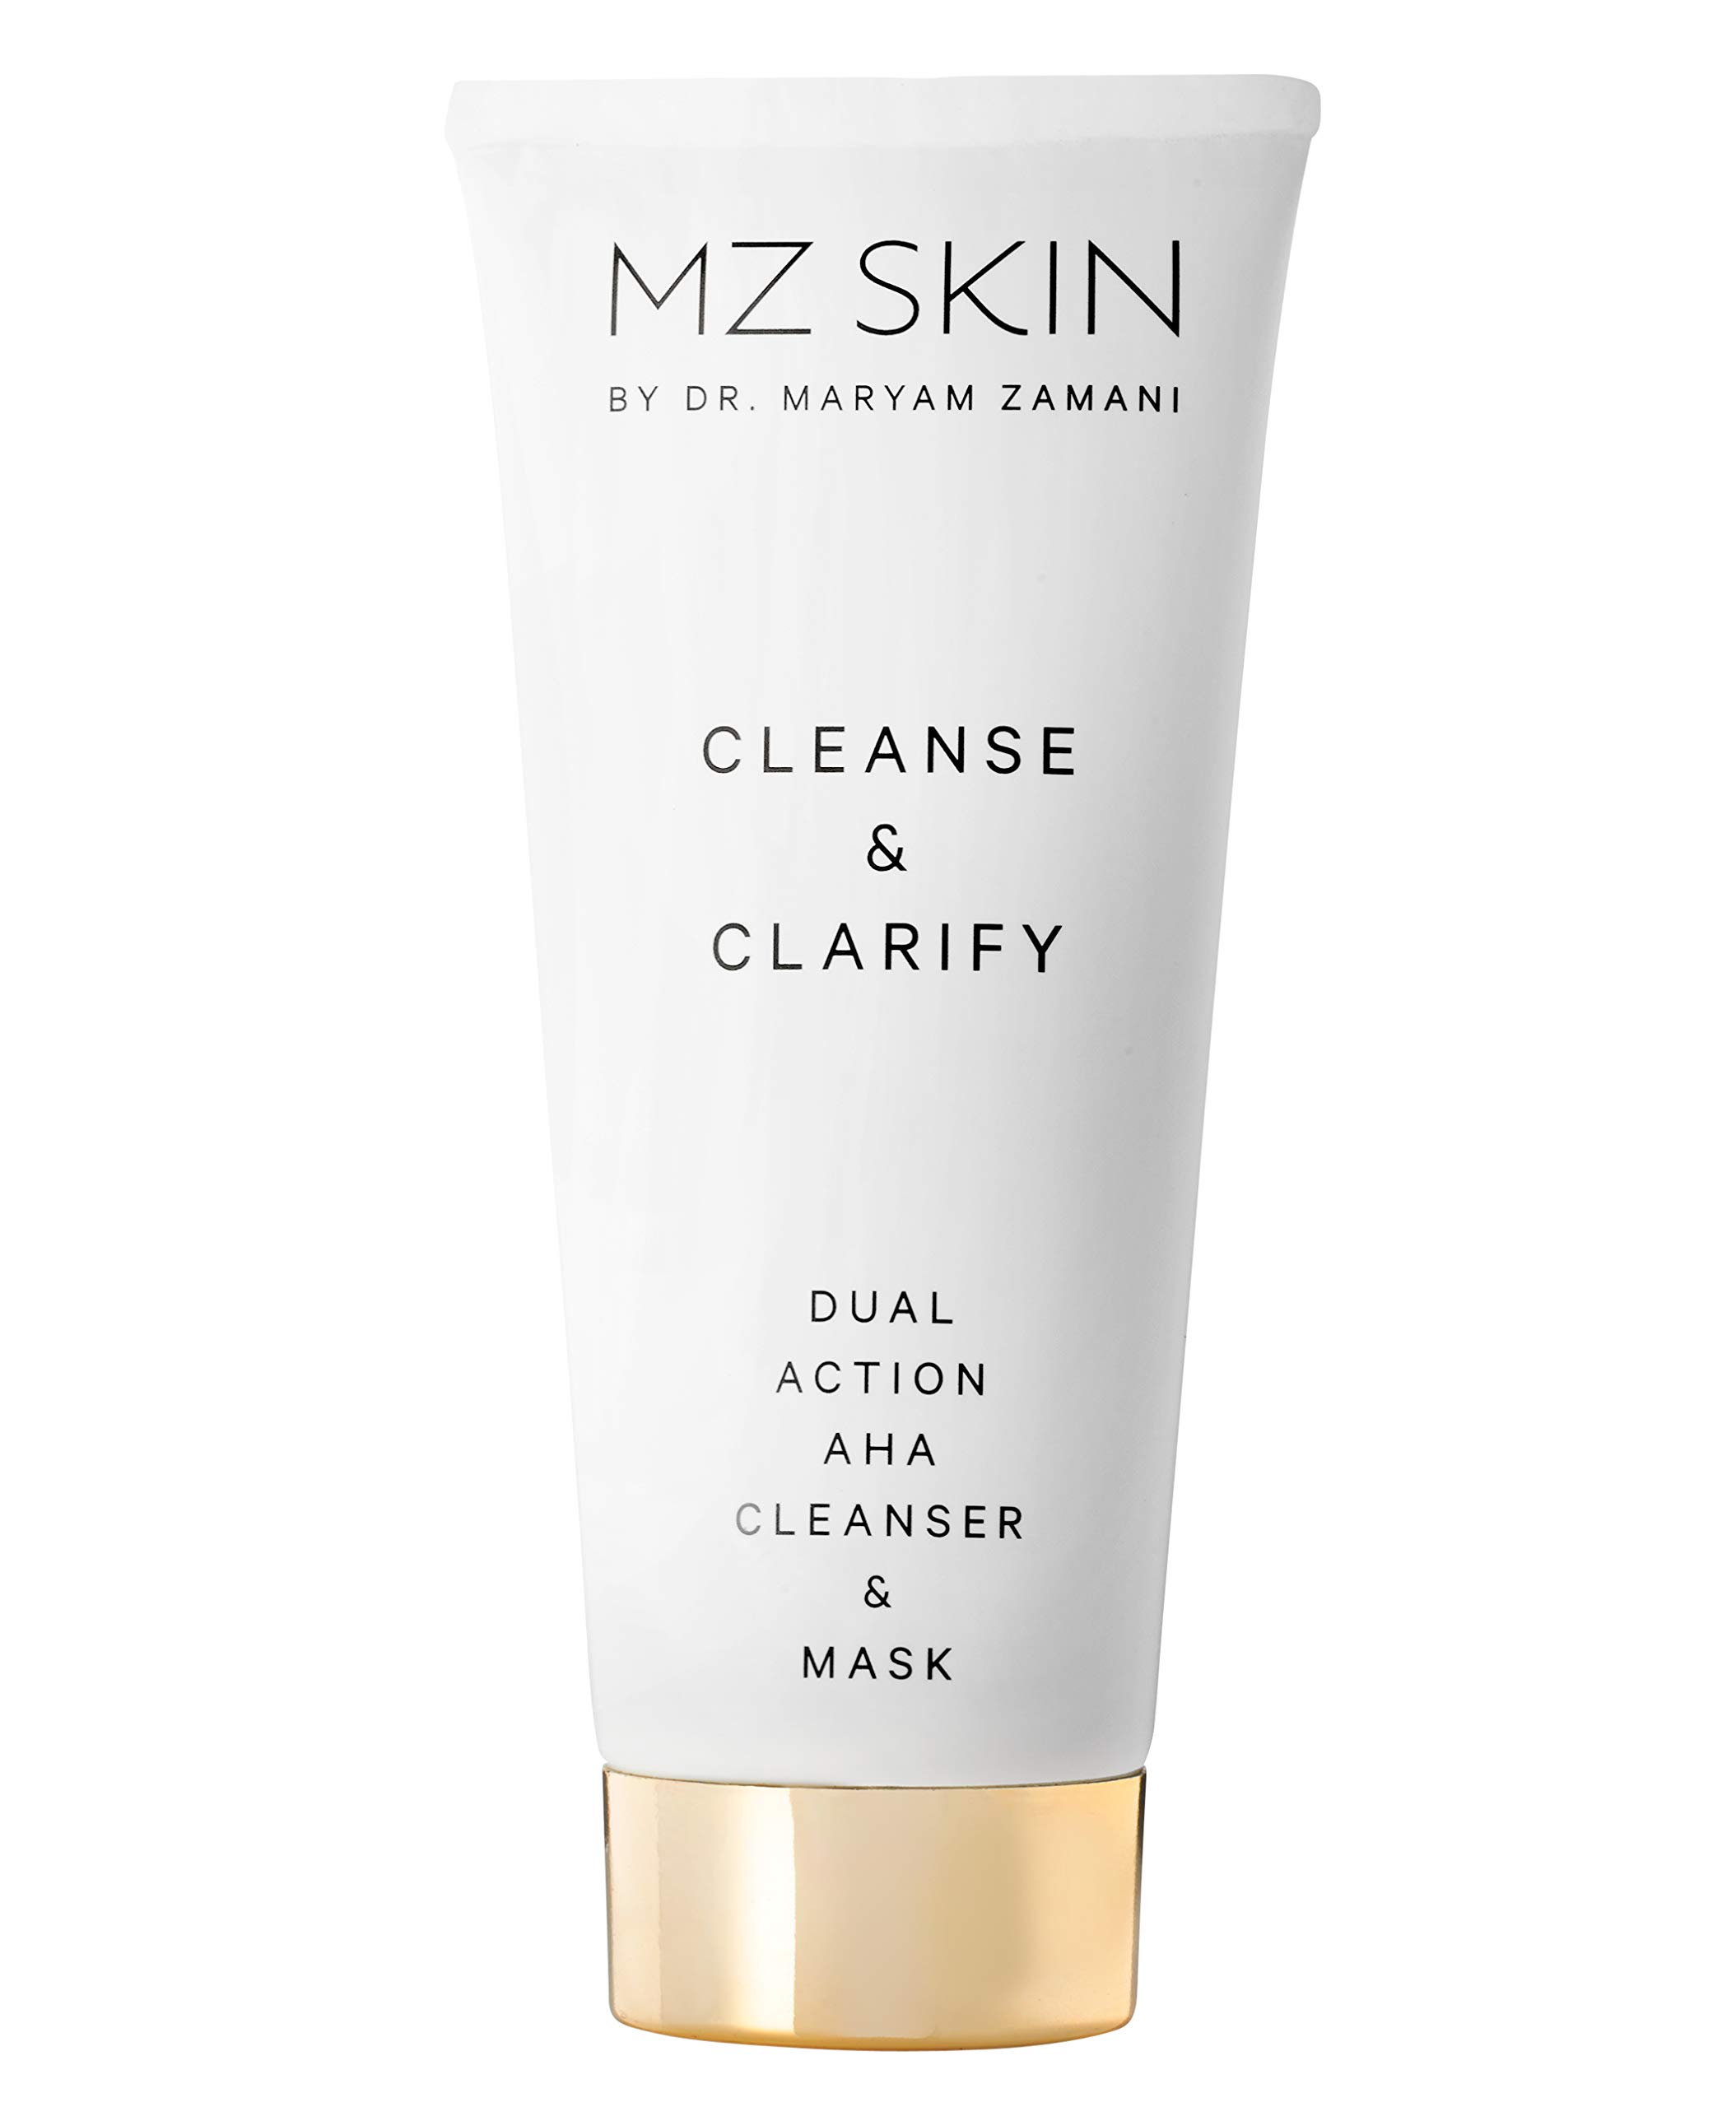 CLEANSE & CLARIFY Dual Action AHA Cleanser & Mask